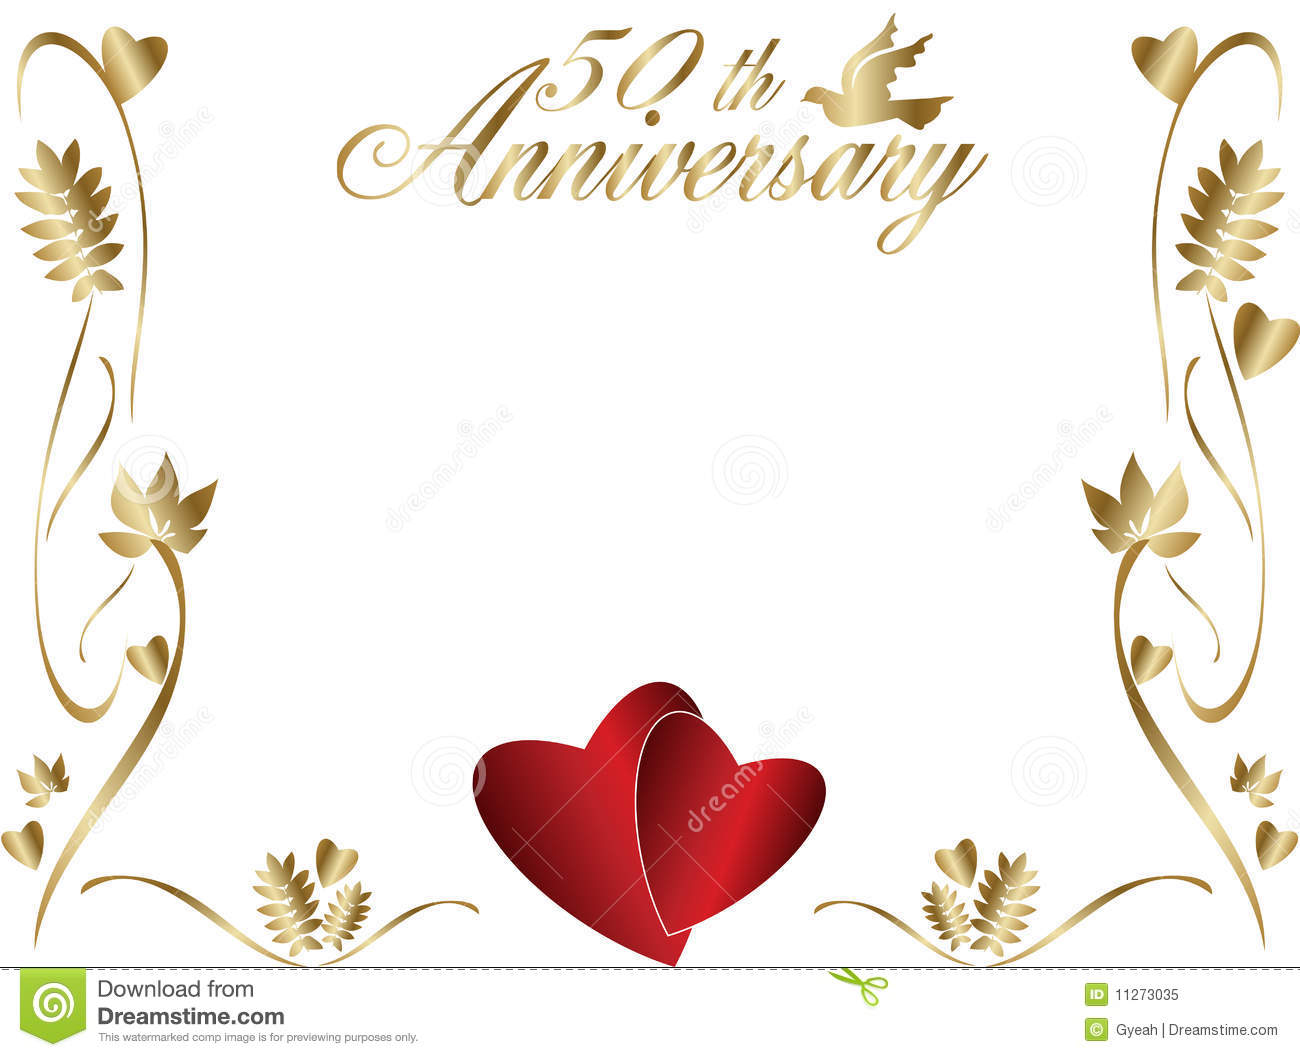 50th wedding anniversary border stock vector illustration of heart